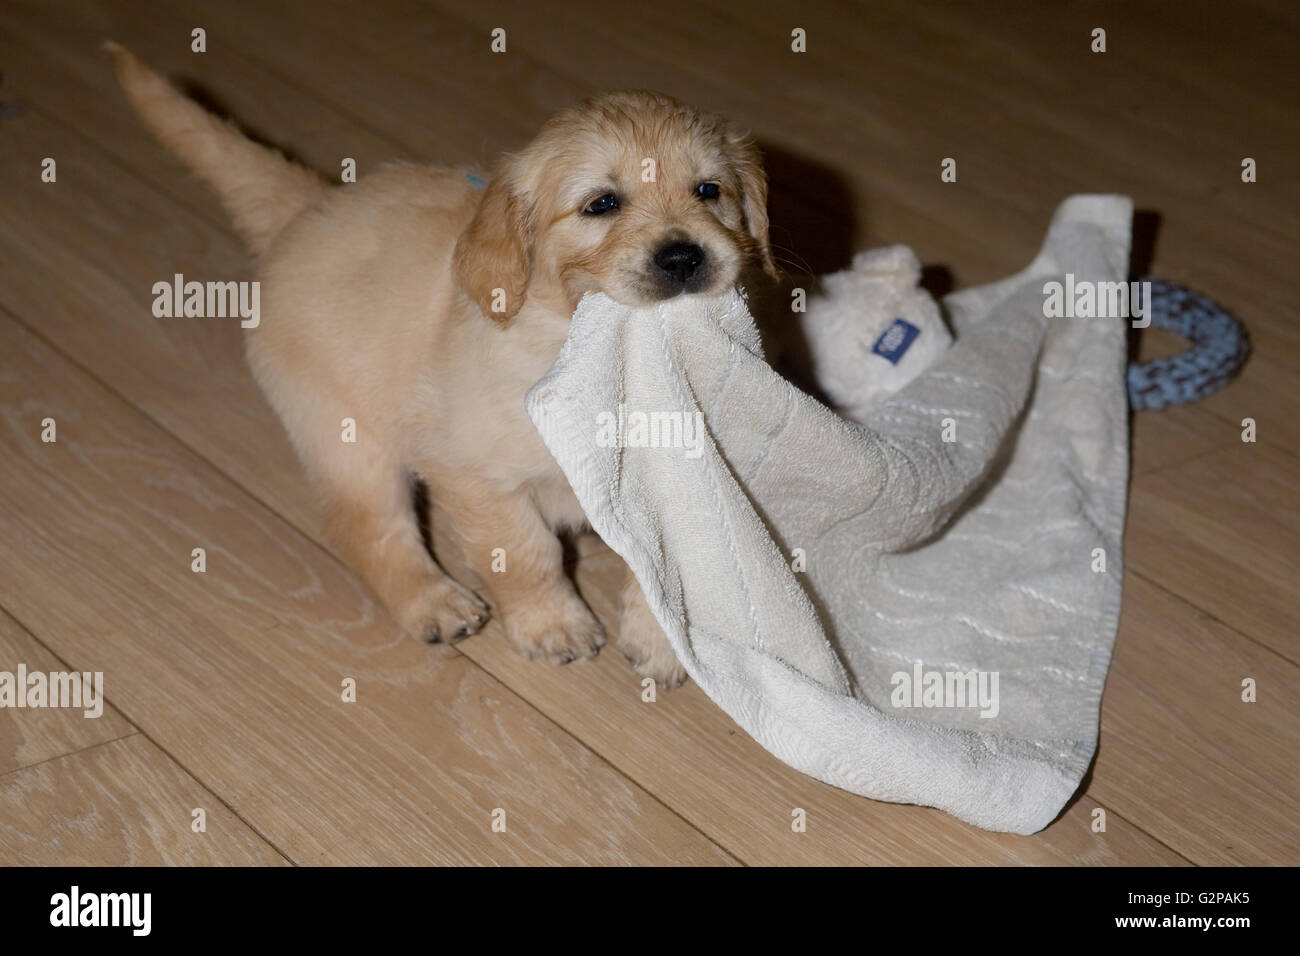 golden retriever puppy on laminate floor pulling a towel - Stock Image